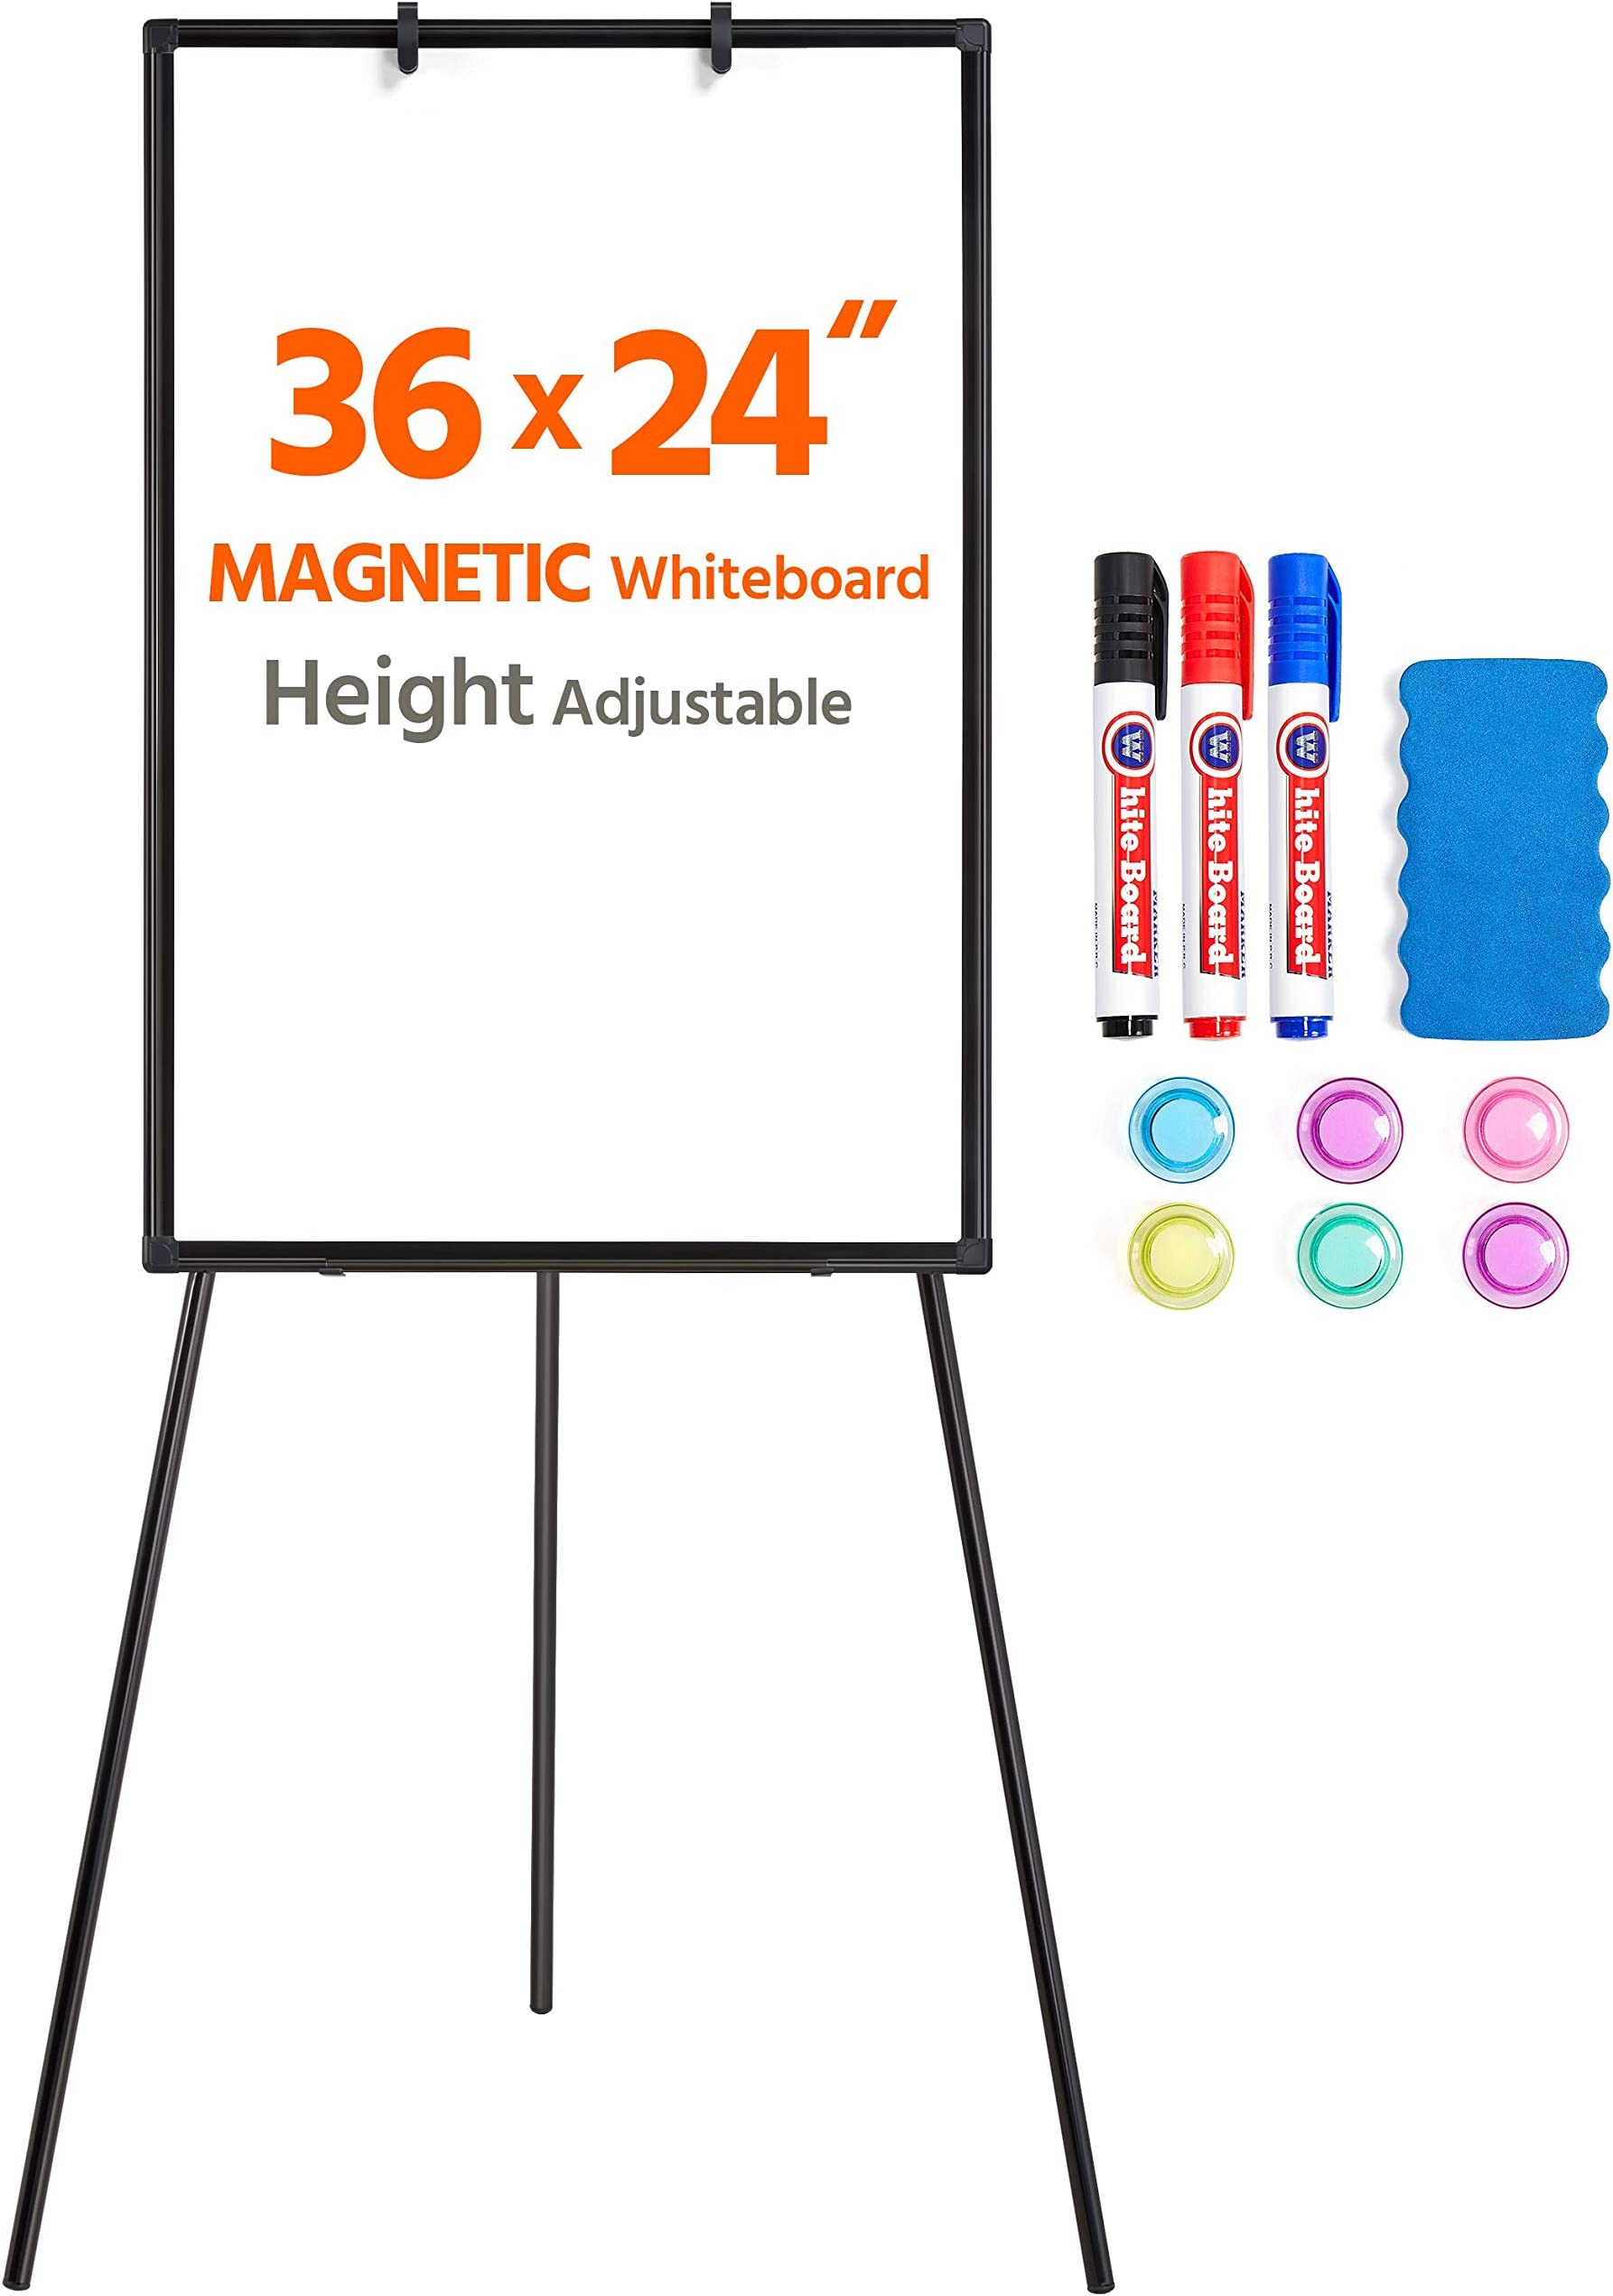 Yaheetech Tripod Magnetic Whiteboard 36 x 24 Dry Erase Board, Portable White Board with Stand White Board Adjustable Height for Office Meeting/ Home Display Whiteboard Tripod, Black